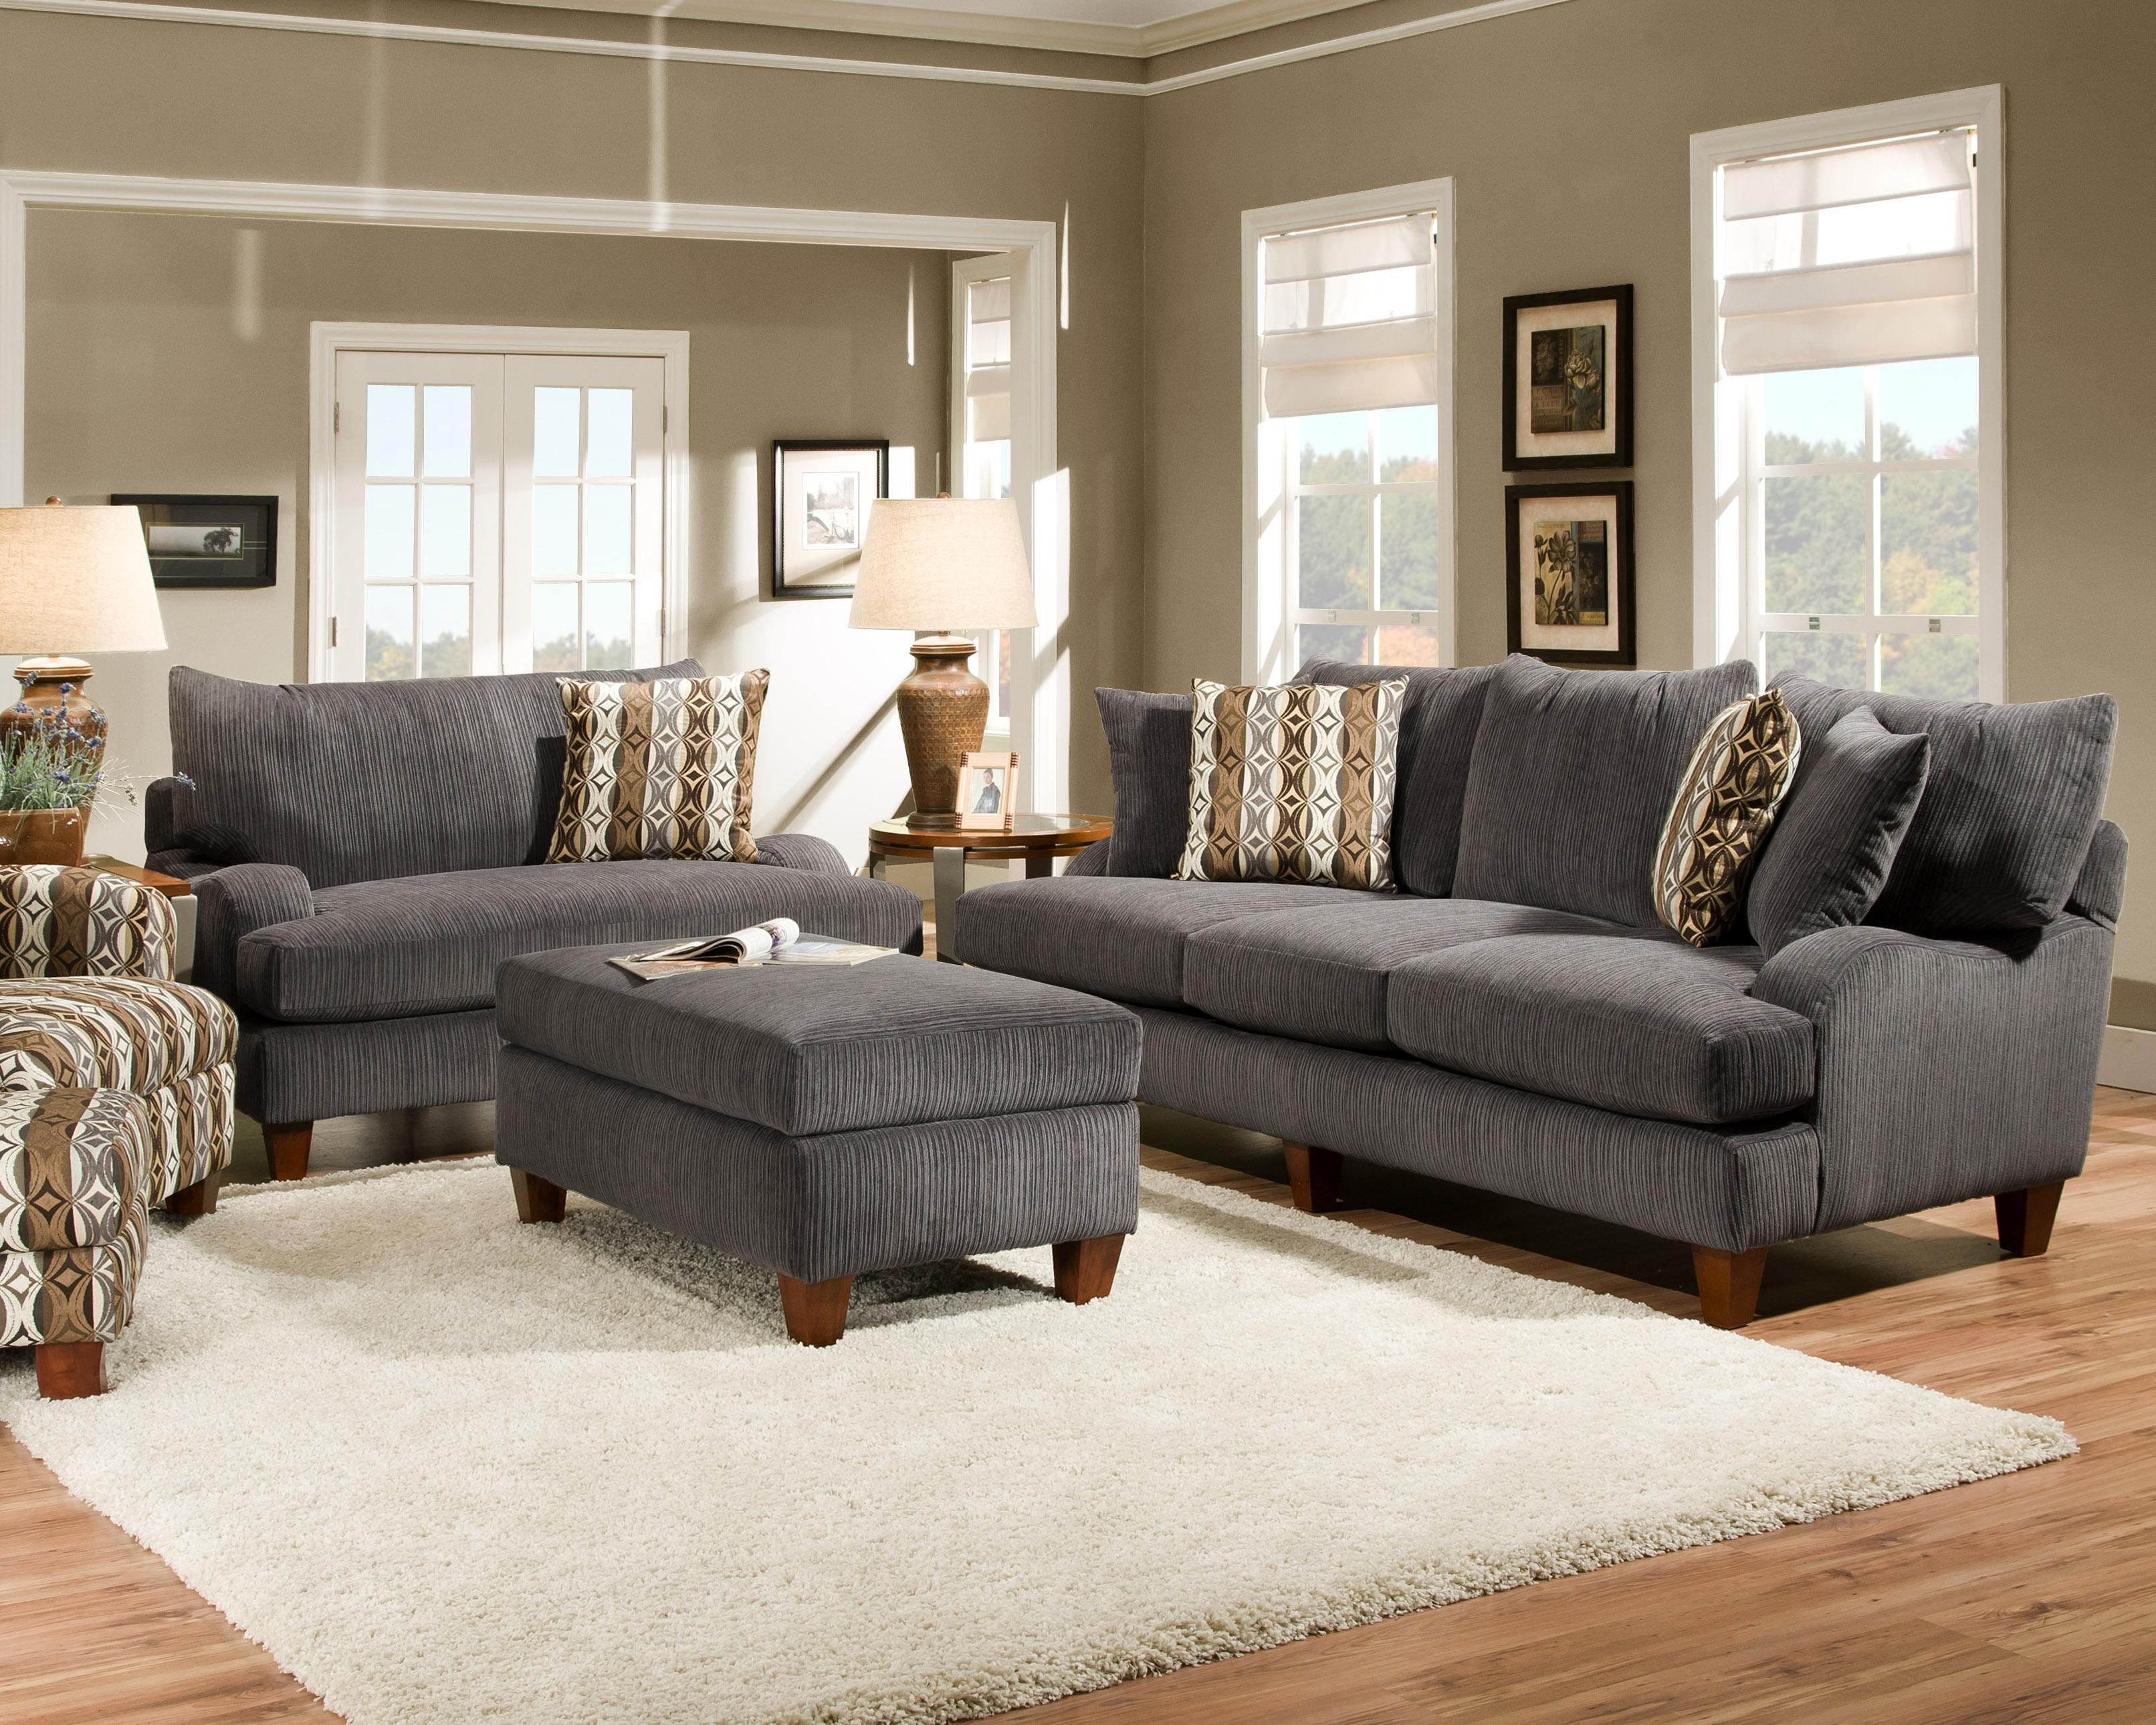 Sofas Center : Blue Gray Sectional Sofa And Loveseat Setsgrey Set Pertaining To Blue Gray Sofas (Image 18 of 20)